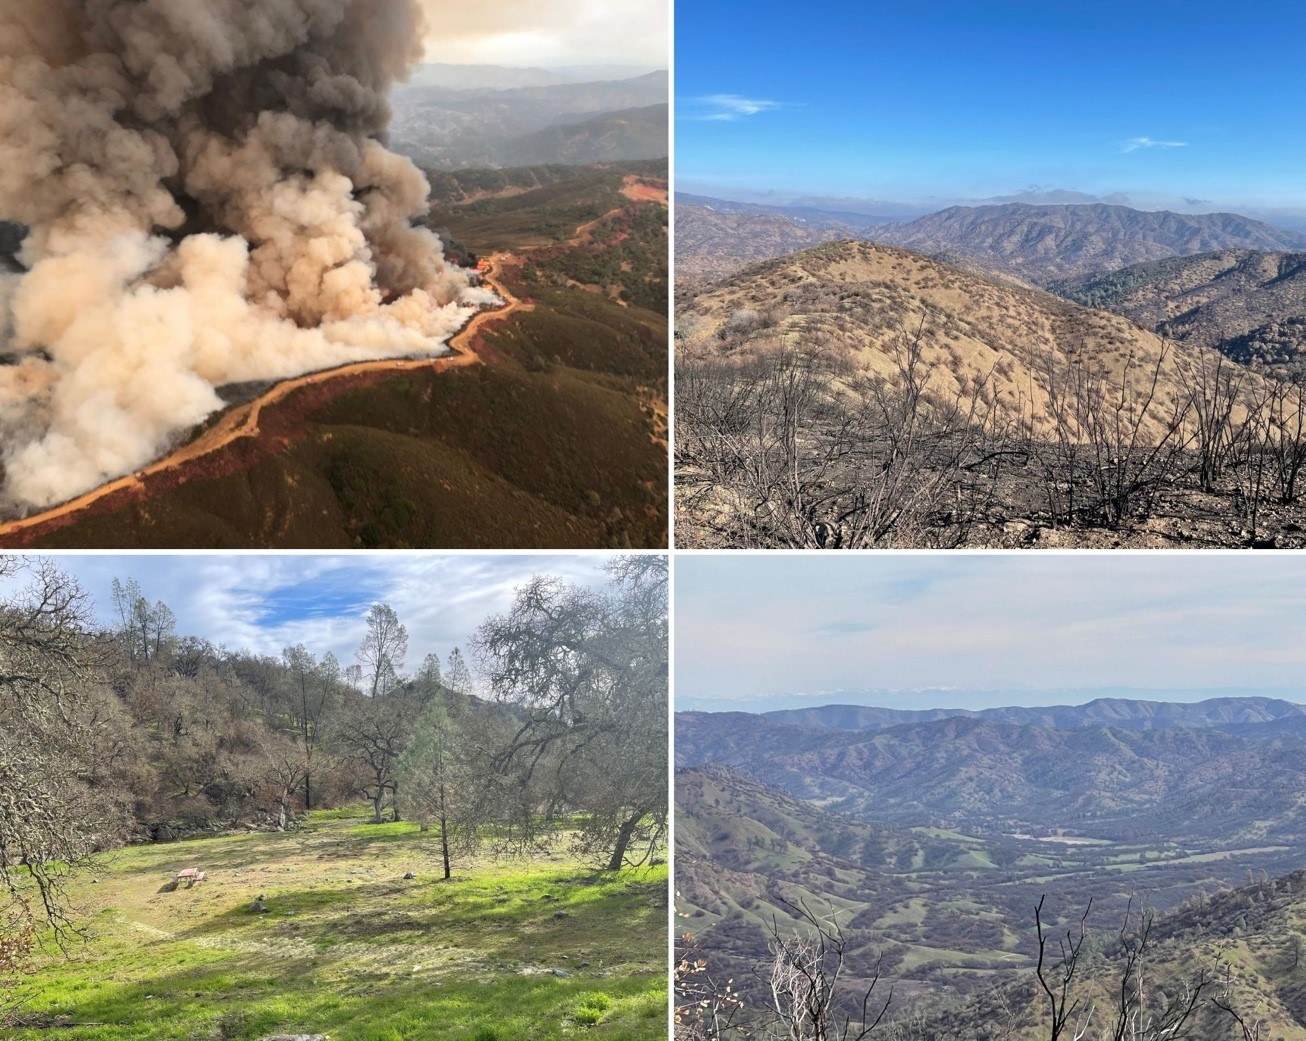 Top left: Control burns set on the west side of a dozer line at Henry W. Coe State Park on August 31, 2020. Photo from CAL FIRE. Top right: Burned area at County Line Road in January 2021. Bottom left: Pacheco Creek Crossing on Feb. 23, 2021. Bottom right: Paradise Flat and Rooster Comb on Feb. 23, 2021. Photos from California State Parks.